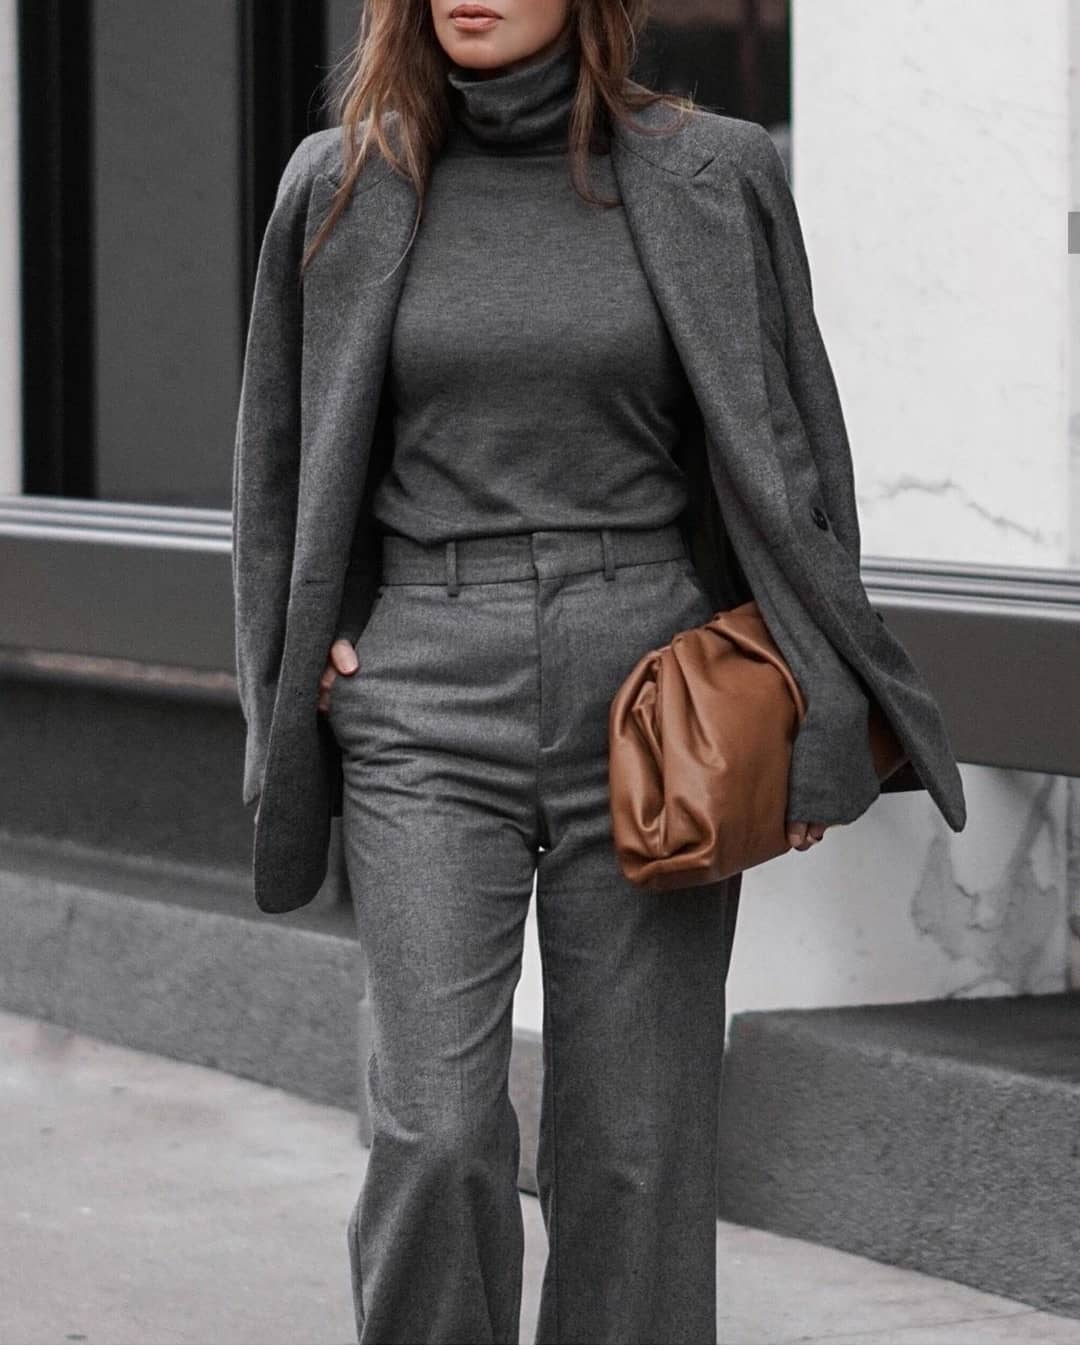 16 Must-Have Grey Pieces to Wear to Work